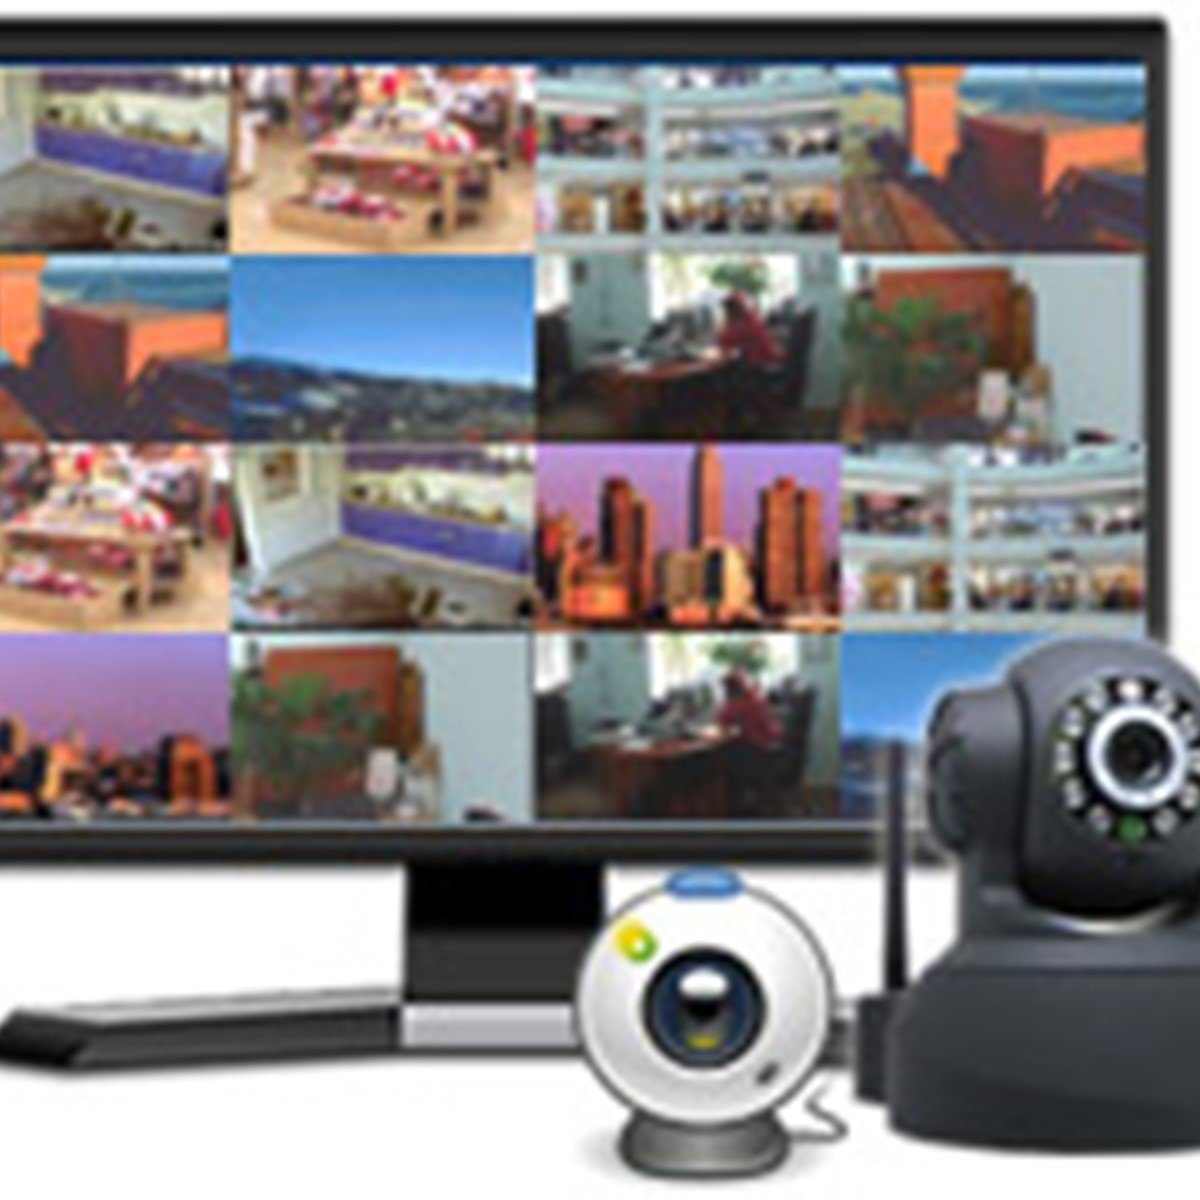 Linux Video Surveillance Software